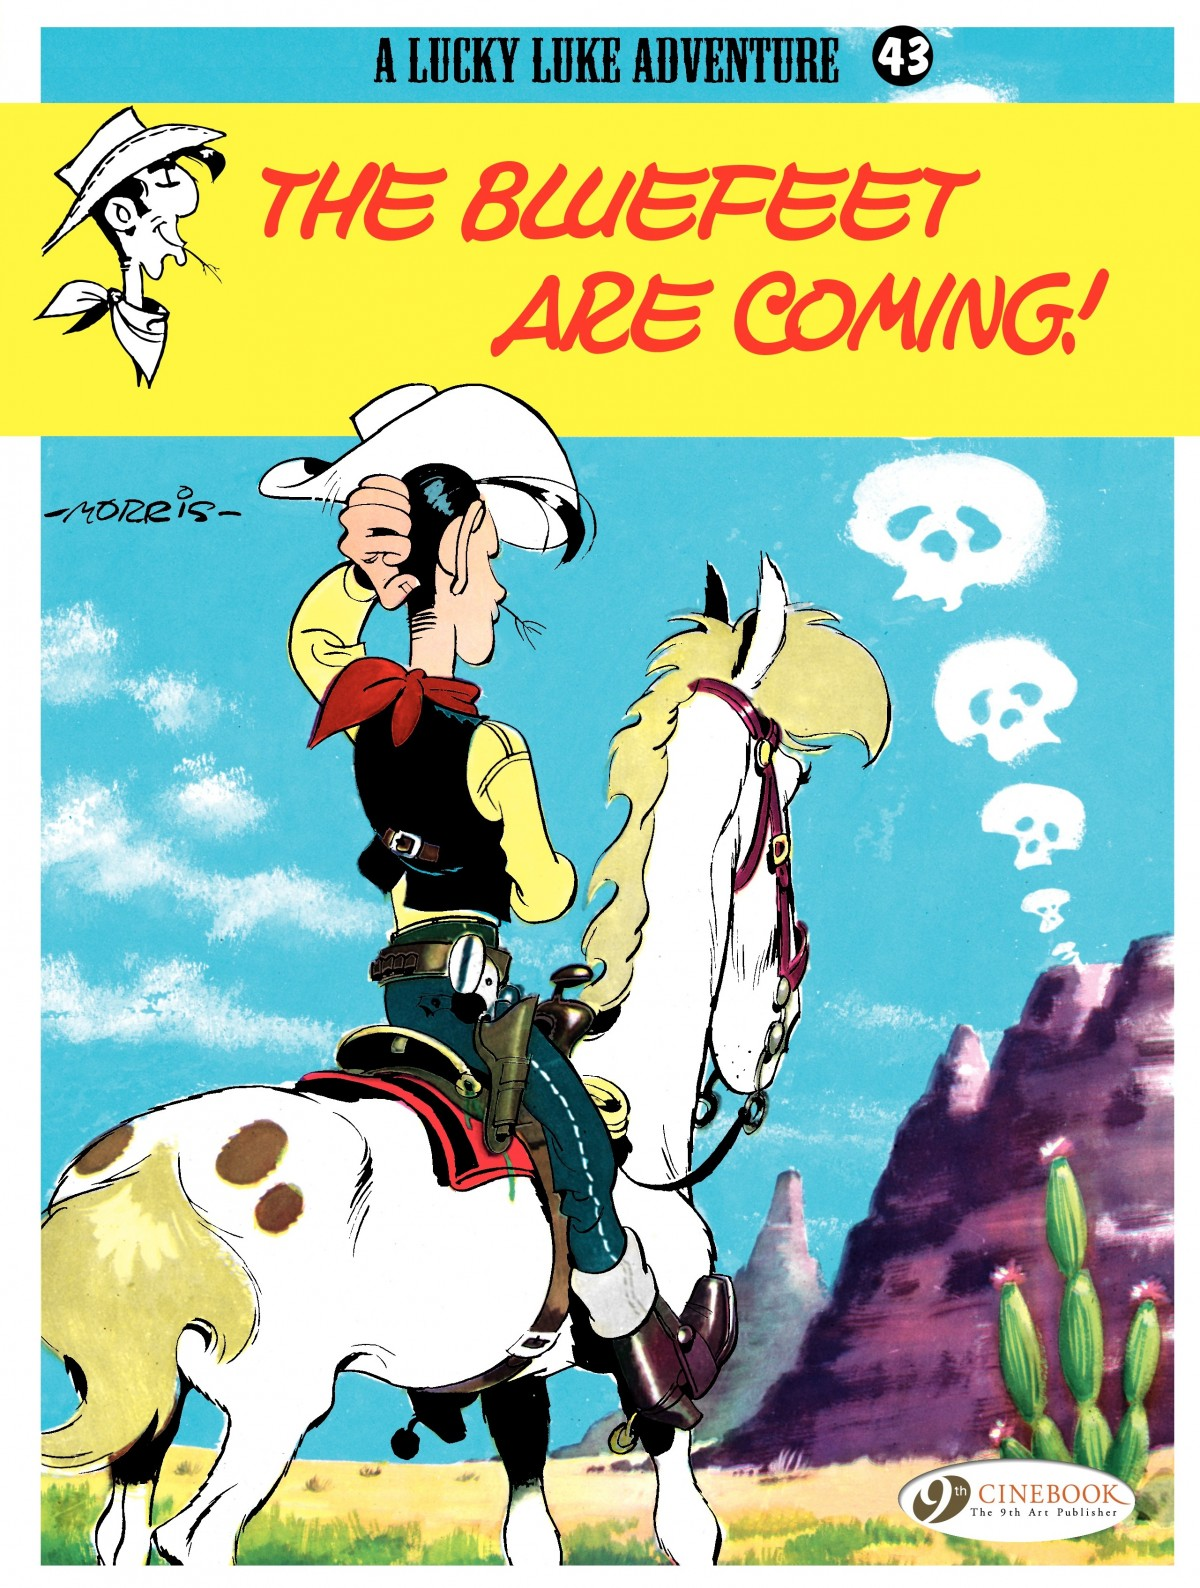 A Lucky Luke Adventure 43 Page 1